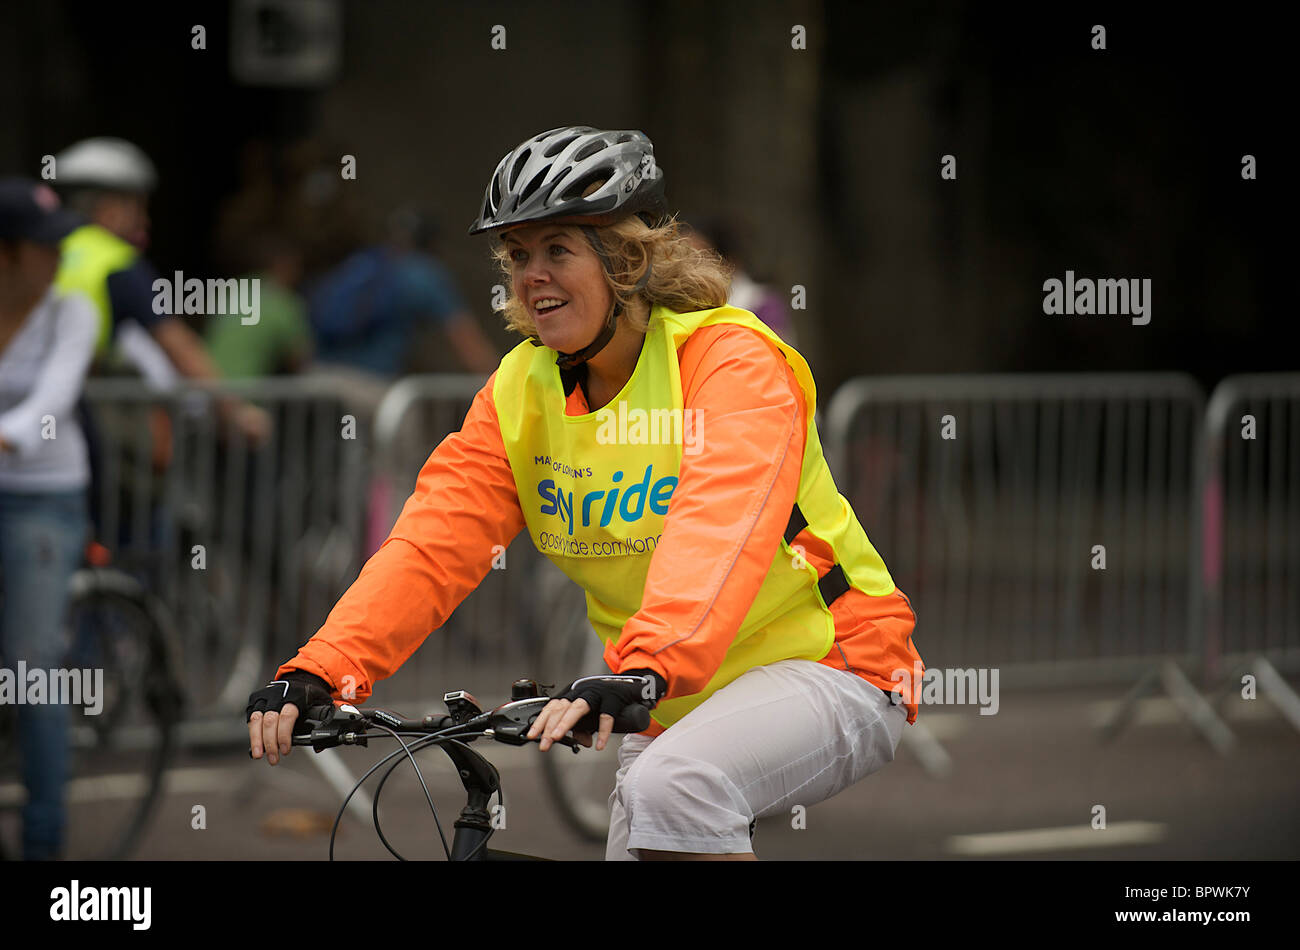 Woman in Sky Ride - Stock Image